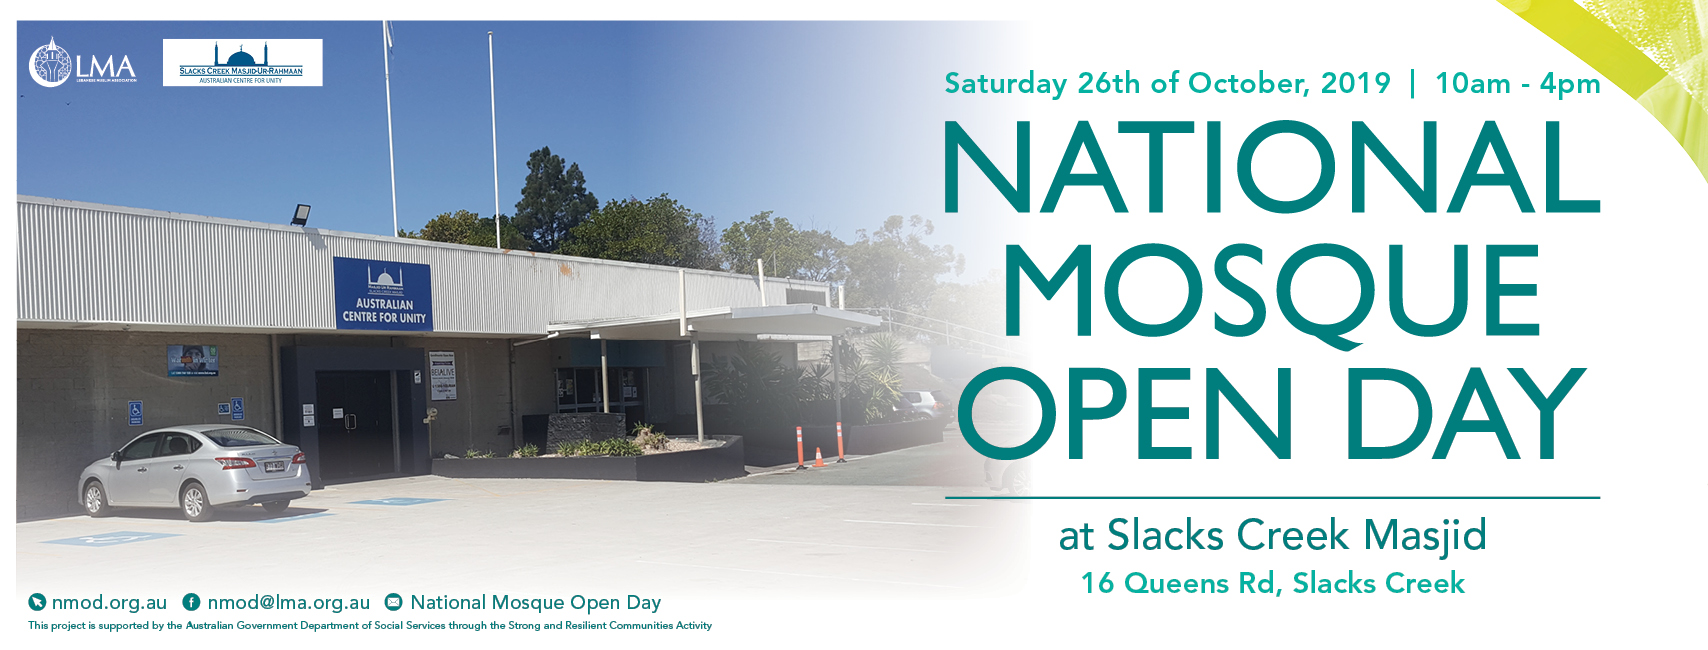 Slacks Creek Mosque Open Day